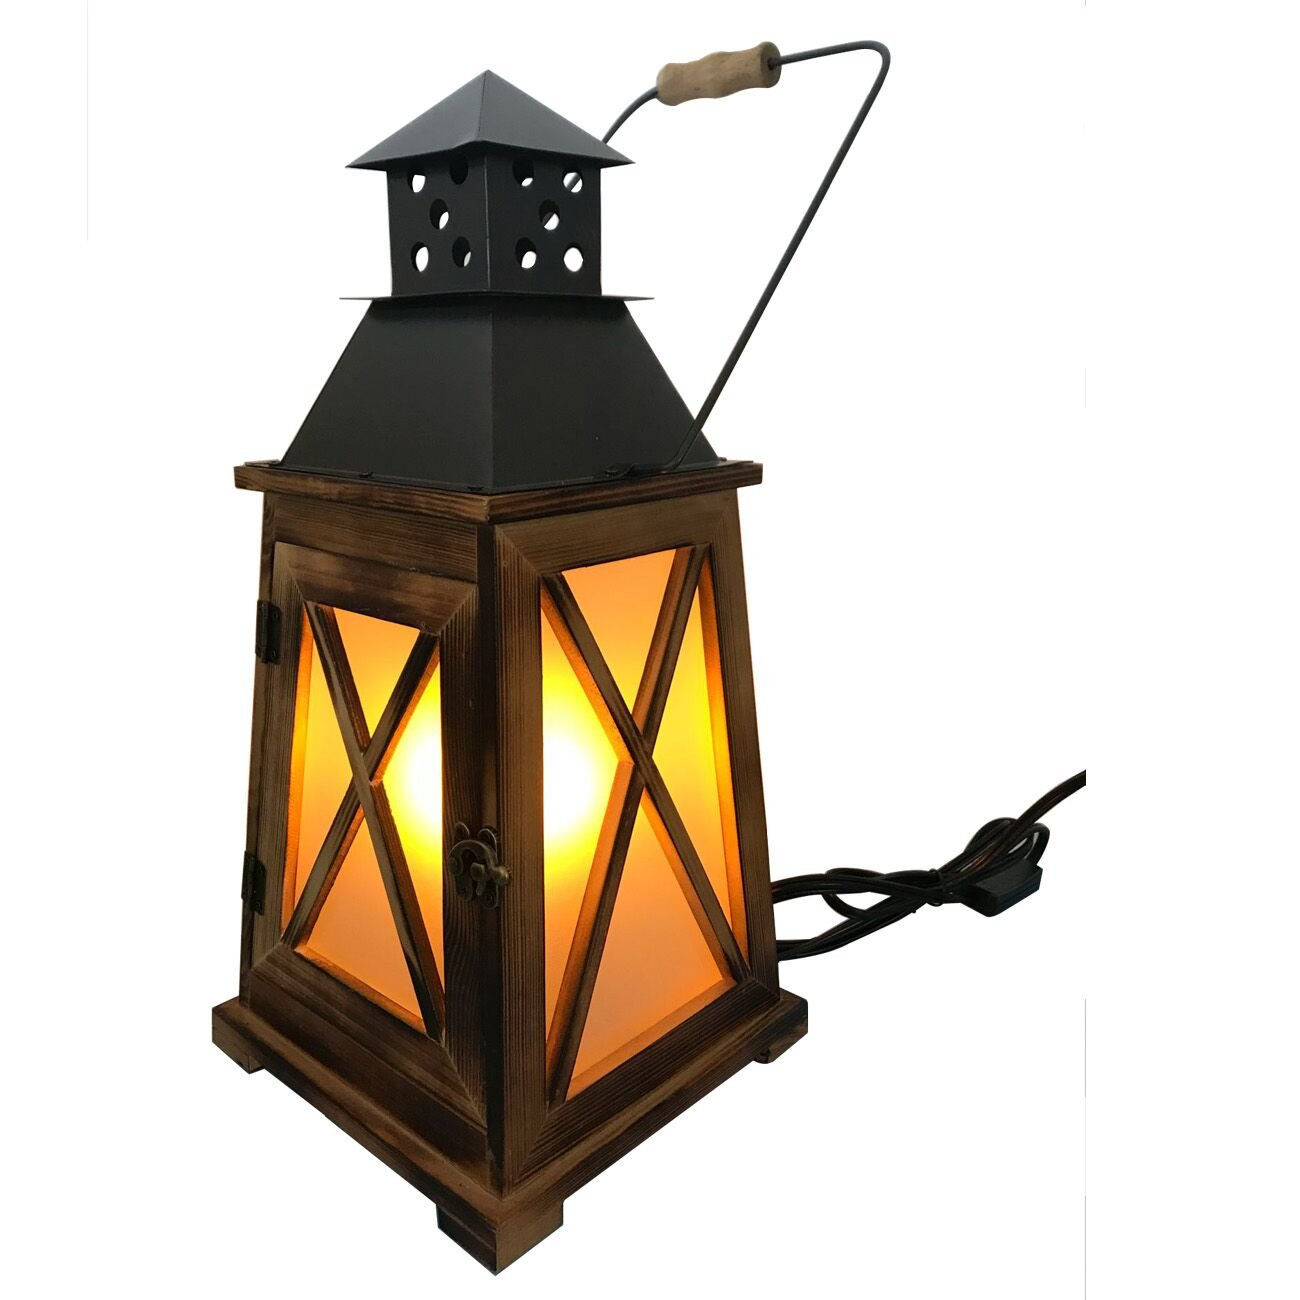 Decoluce Vintage Decorative Hurricane Electric Handmade Lantern Lights, Rustic Retro Decor Wood Antique Table Lamp,with Frost Glass For Flame Bulb,Ambient Flameless Candle Lanterns Lights